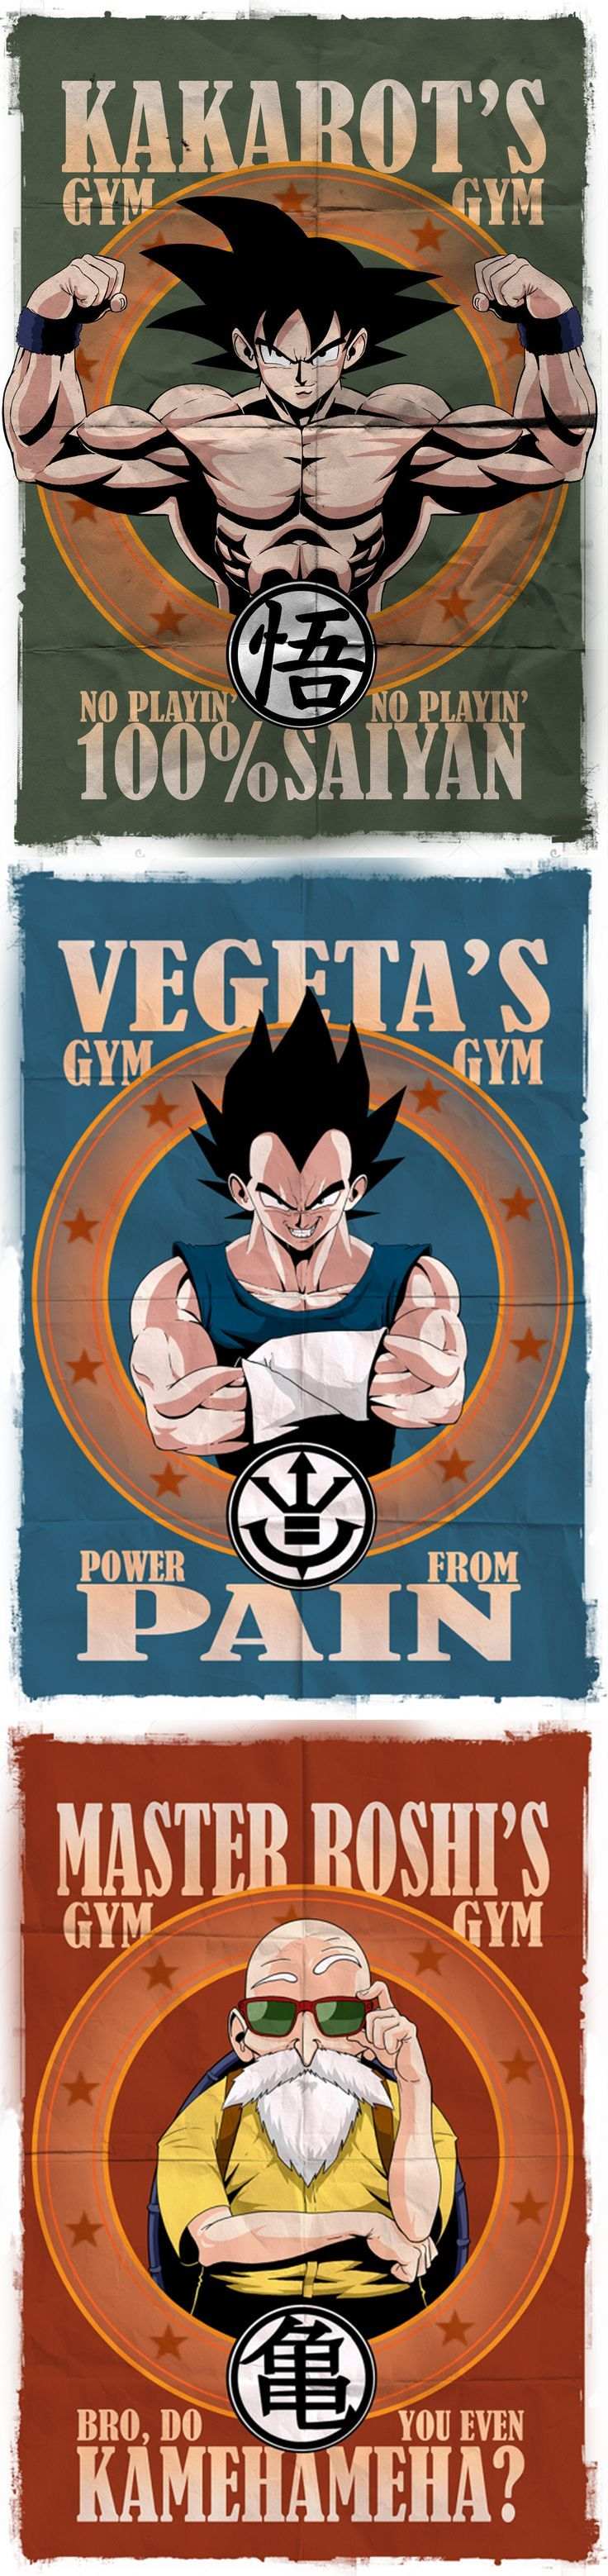 Dragon ball z gyms i seriously want all of these on a shirt dragon ball z gyms i seriously want all of these on a shirt publicscrutiny Image collections